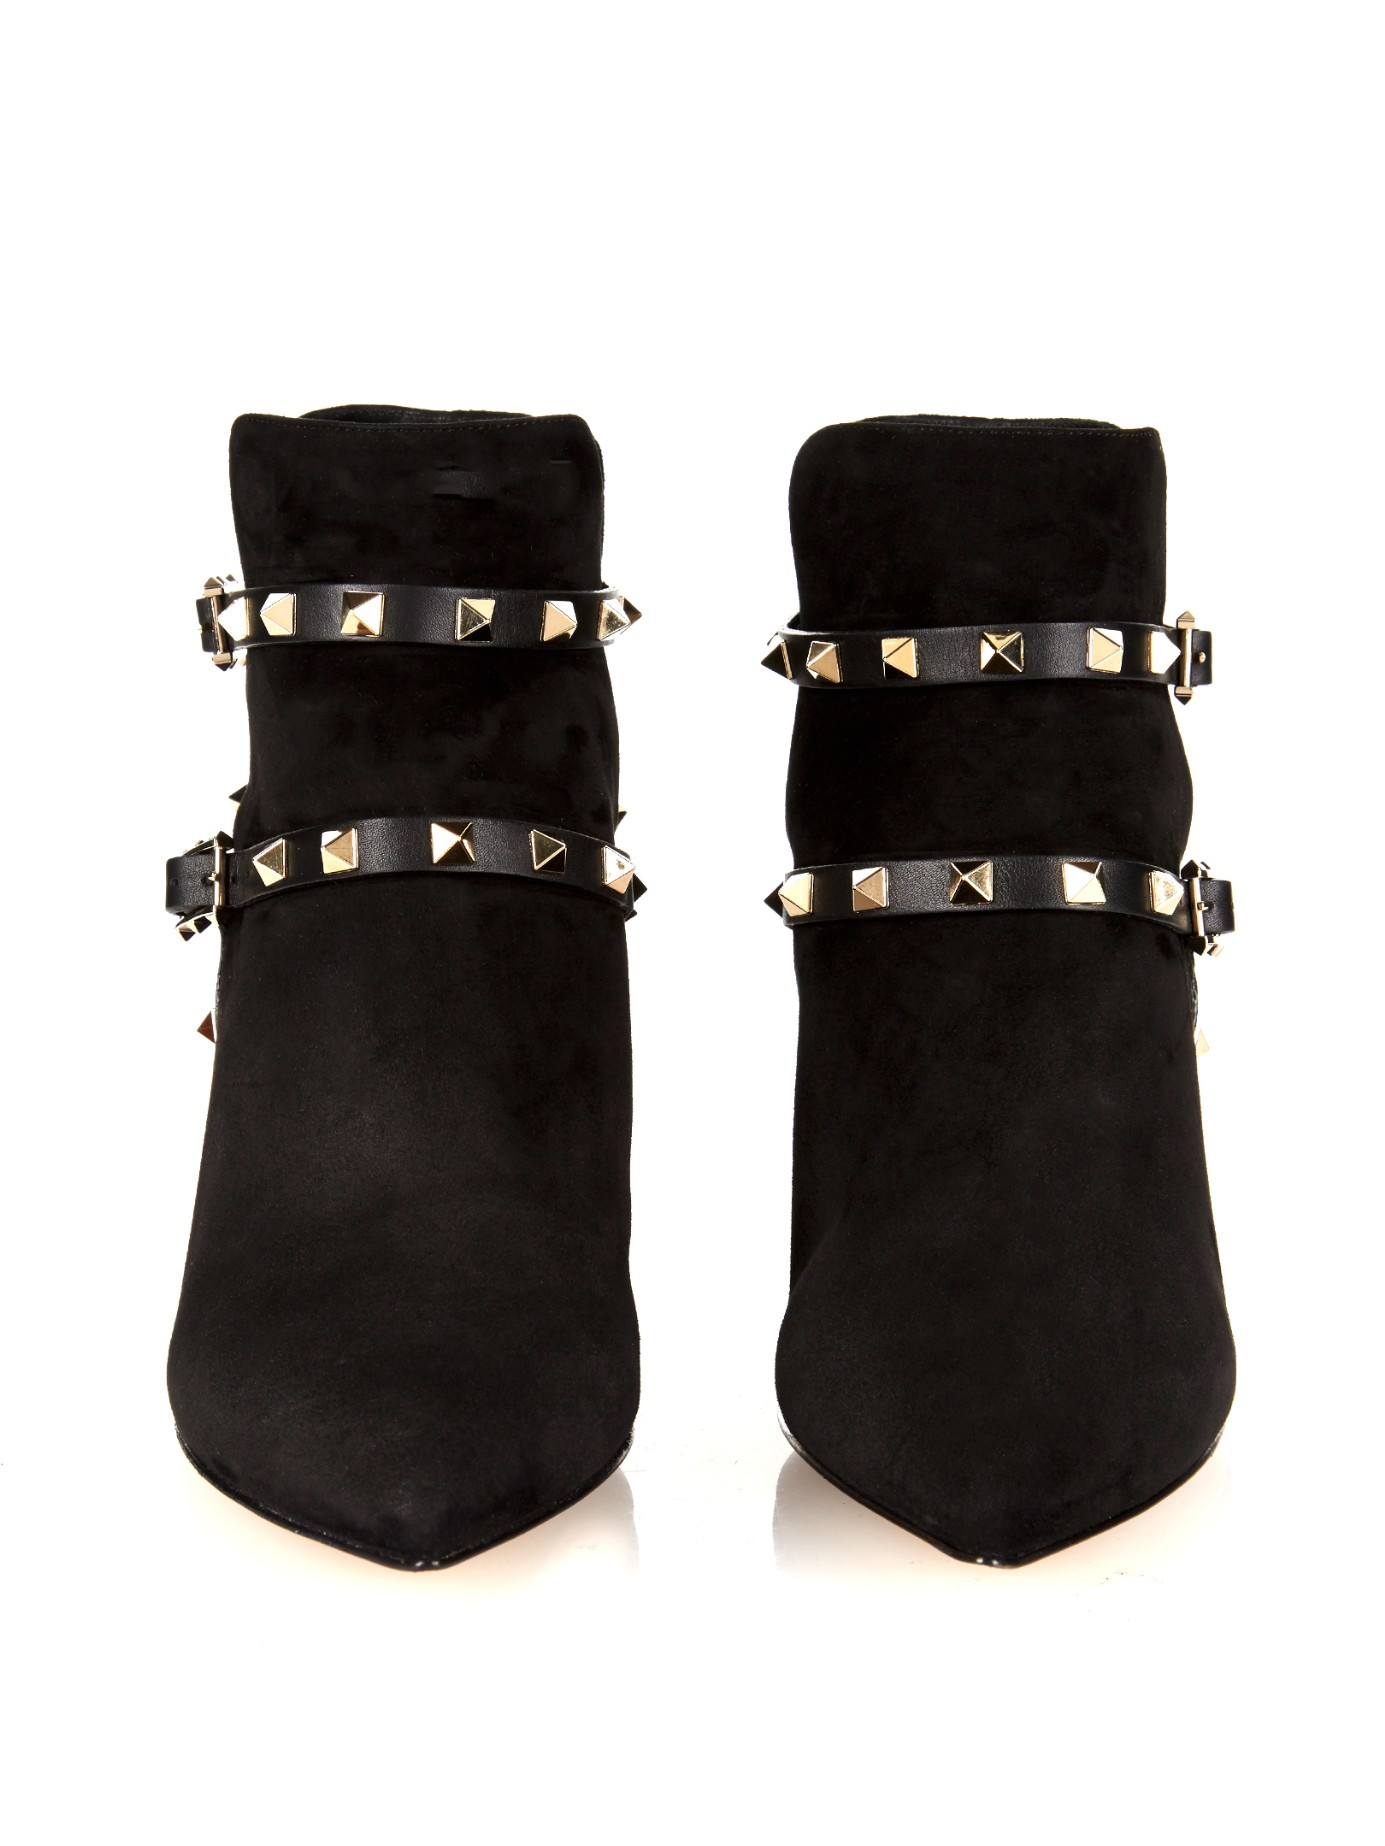 Valentino Suede Rockstud Booties new cheap online visa payment for sale geniue stockist cheap price outlet huge surprise fQFbpvh29